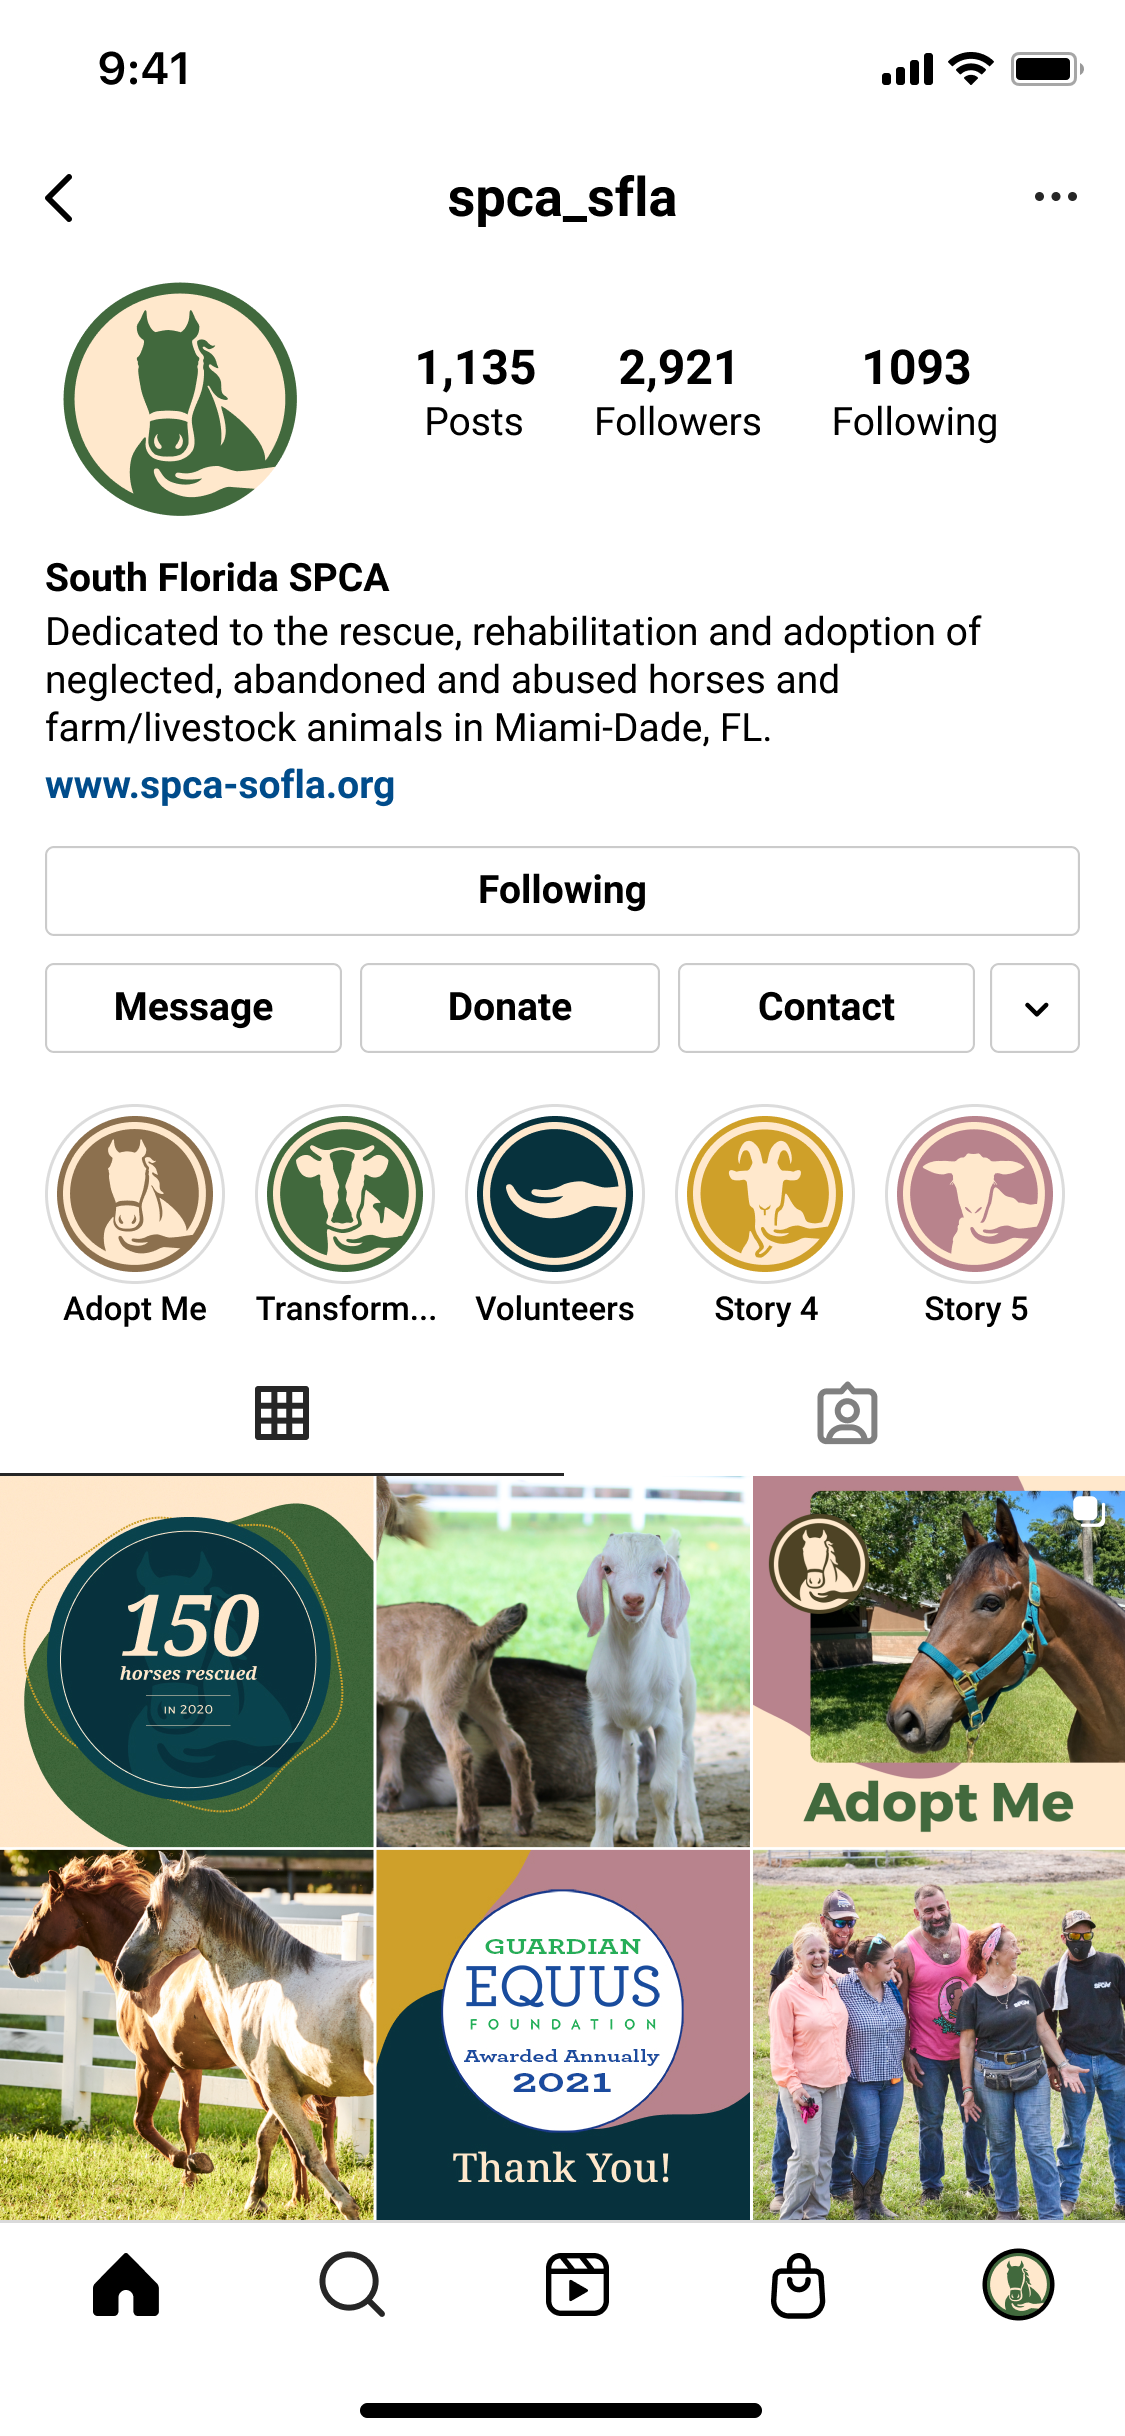 South Florida SPCA Instagram Feed template